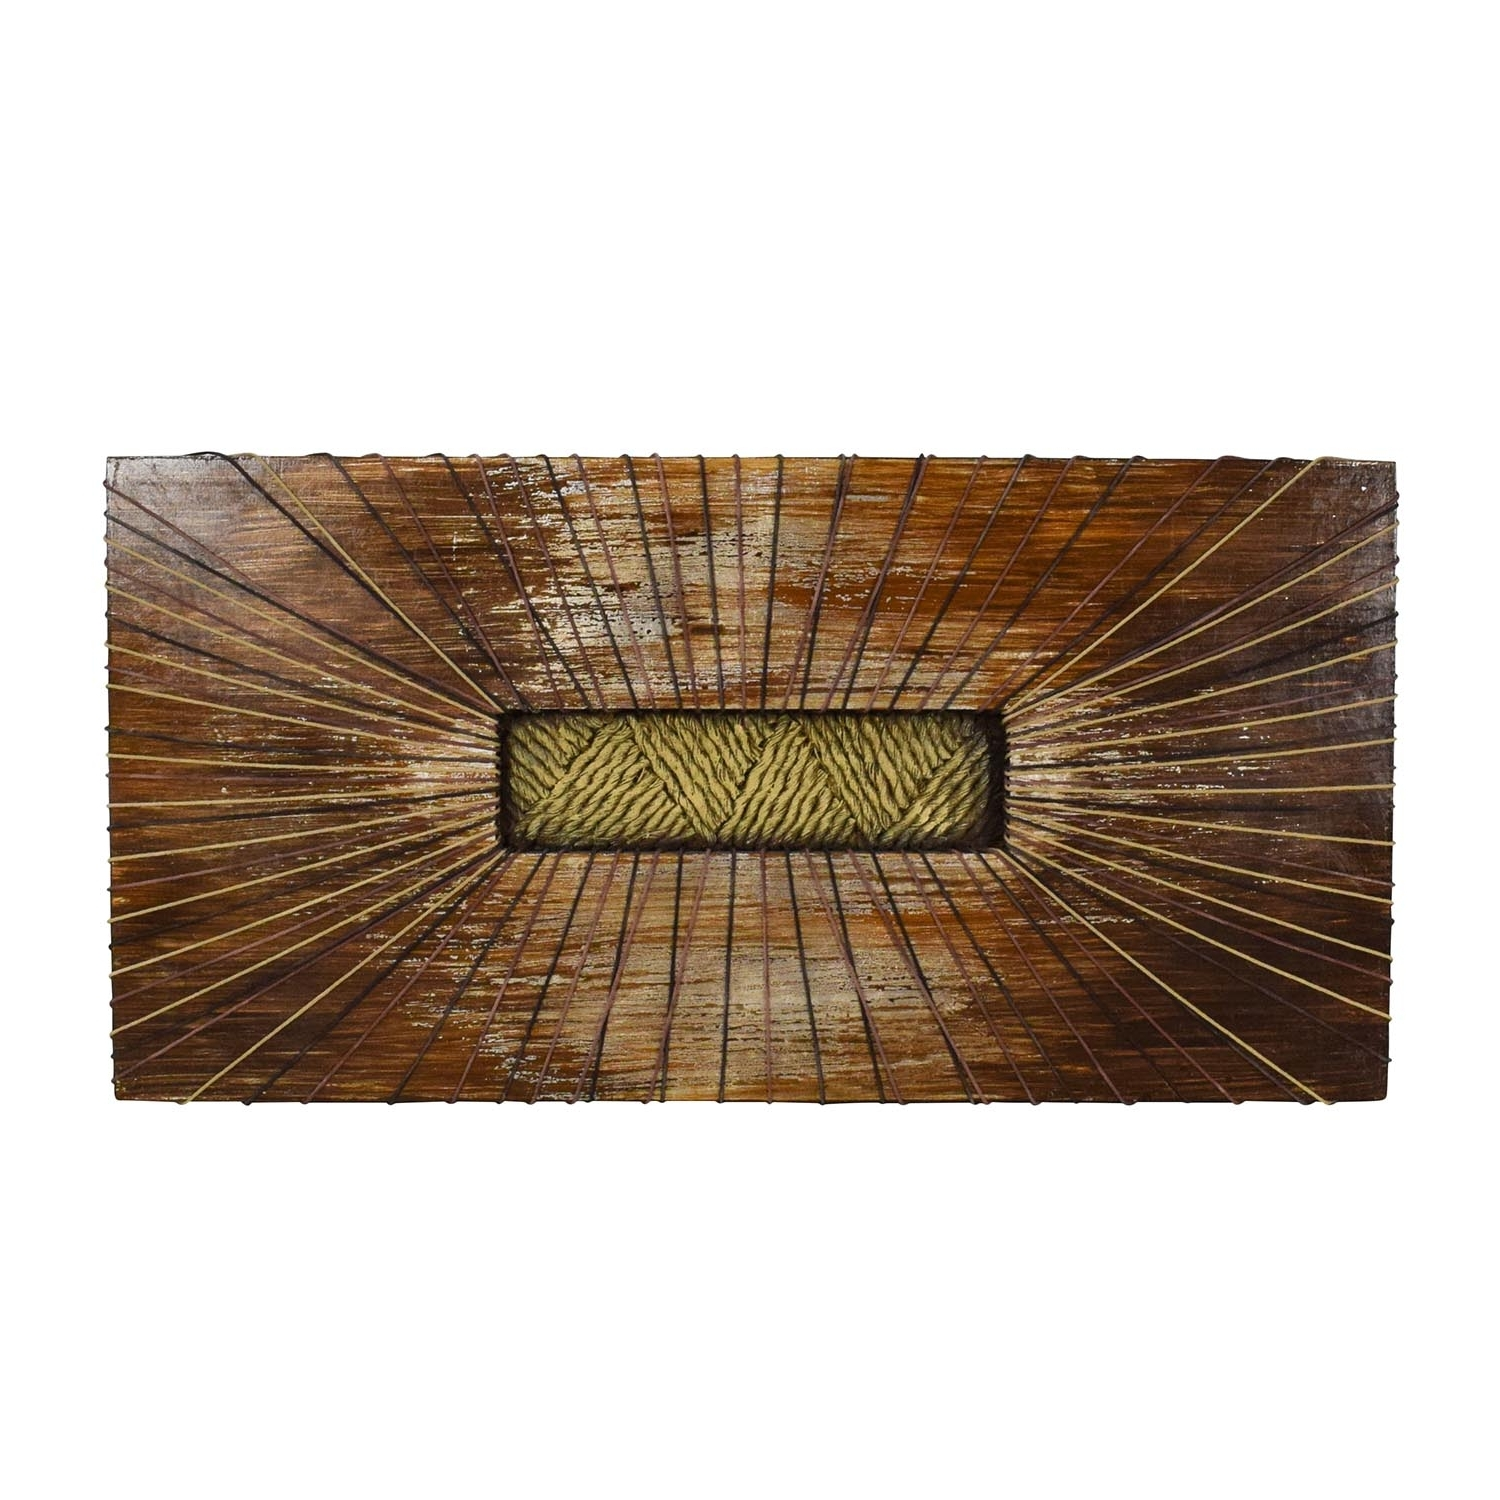 [%83% Off – Uttermost Uttermost Beginnings Metal Wall Art / Decor In Most Recently Released Uttermost Wall Art|Uttermost Wall Art With Regard To Fashionable 83% Off – Uttermost Uttermost Beginnings Metal Wall Art / Decor|Famous Uttermost Wall Art With 83% Off – Uttermost Uttermost Beginnings Metal Wall Art / Decor|2018 83% Off – Uttermost Uttermost Beginnings Metal Wall Art / Decor Intended For Uttermost Wall Art%] (View 1 of 15)